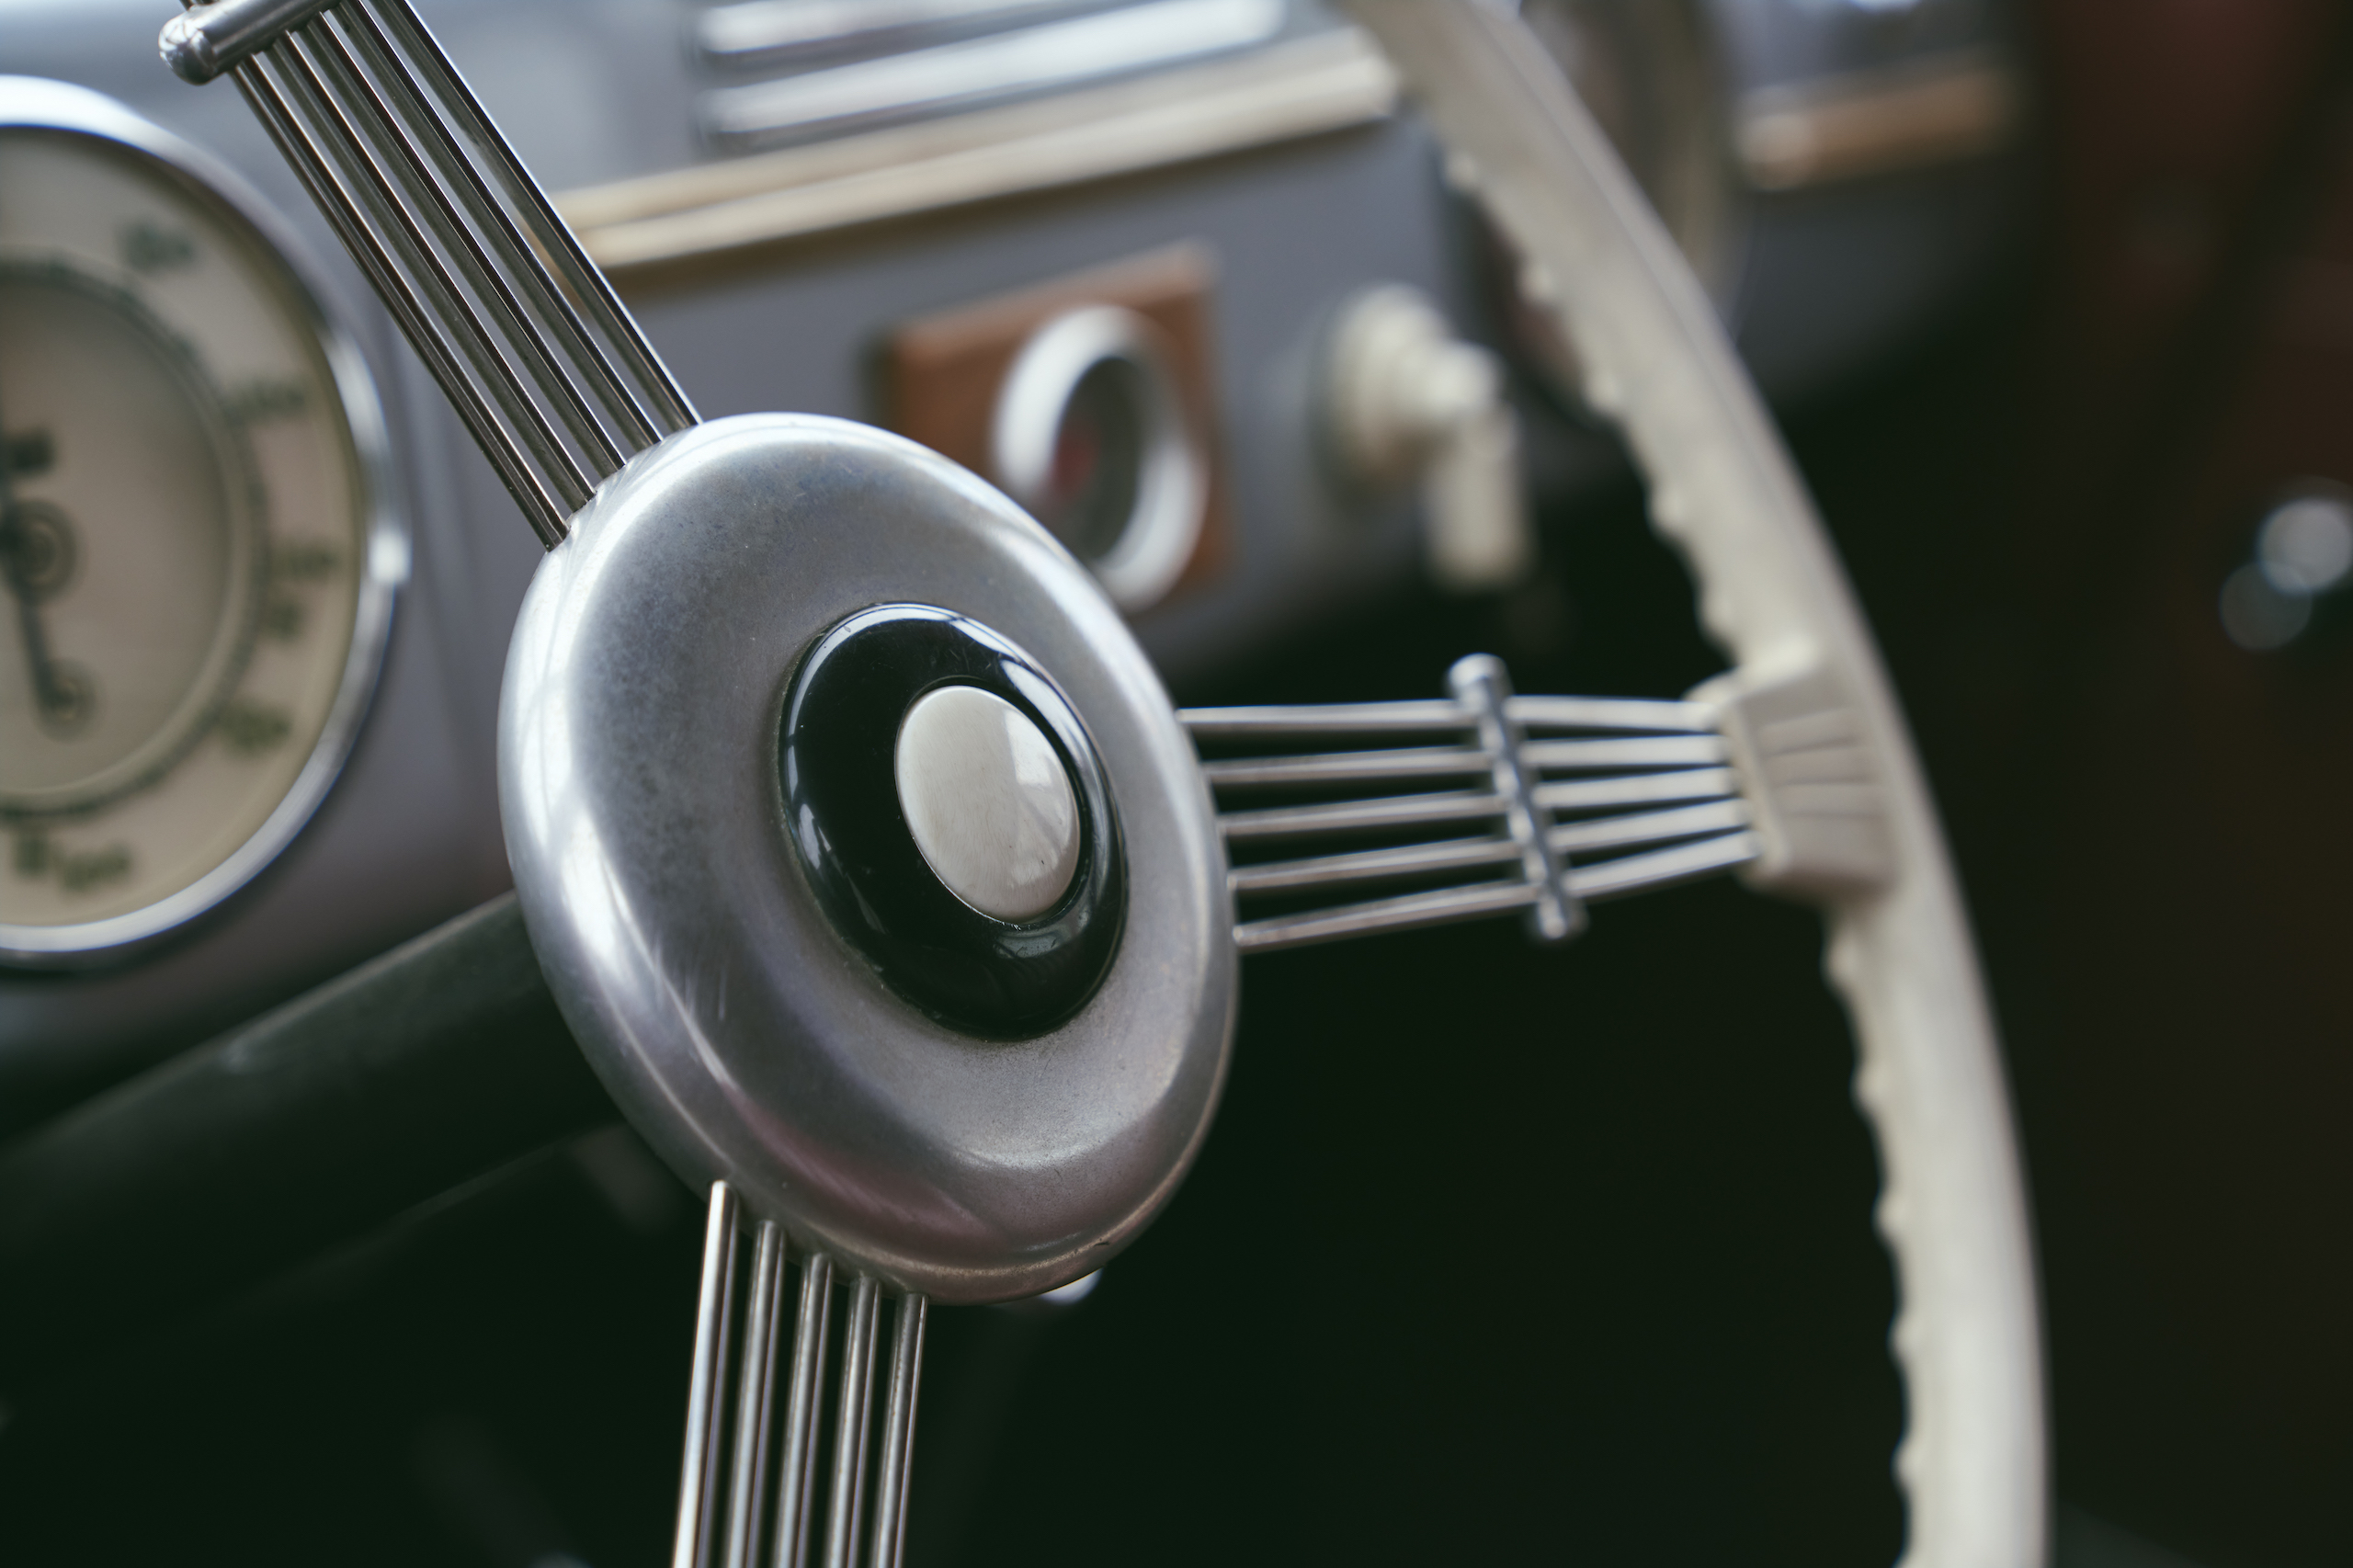 1947 Tatra T87 steering wheel detail